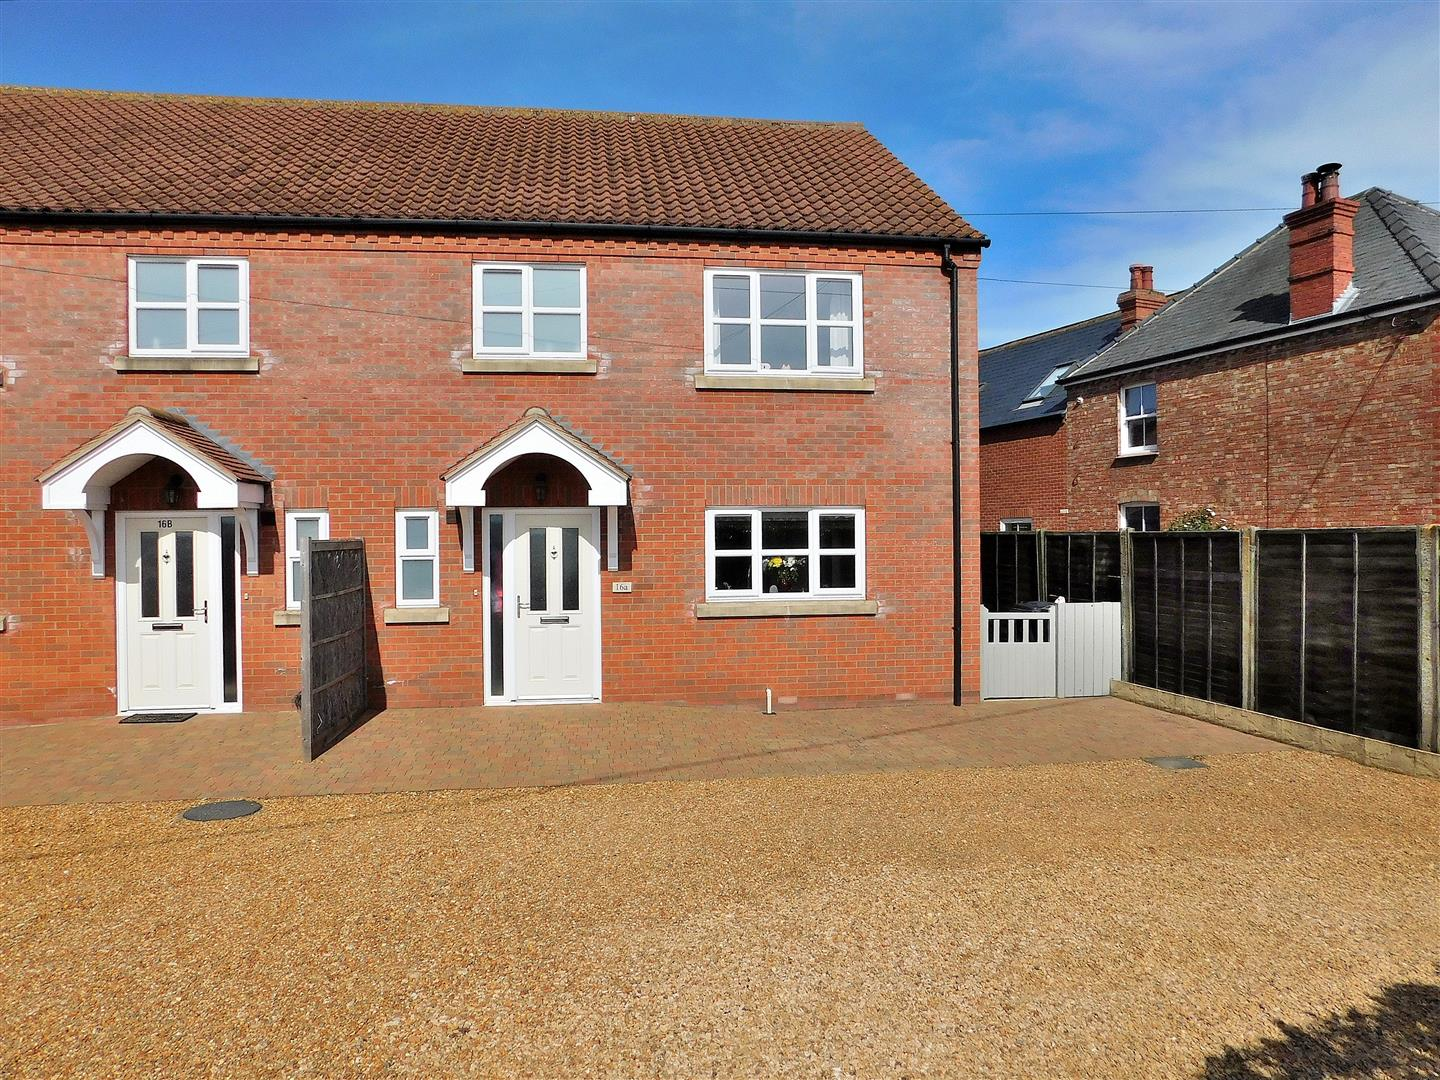 3 bed semi-detached house for sale in Station Road, King's Lynn, PE31